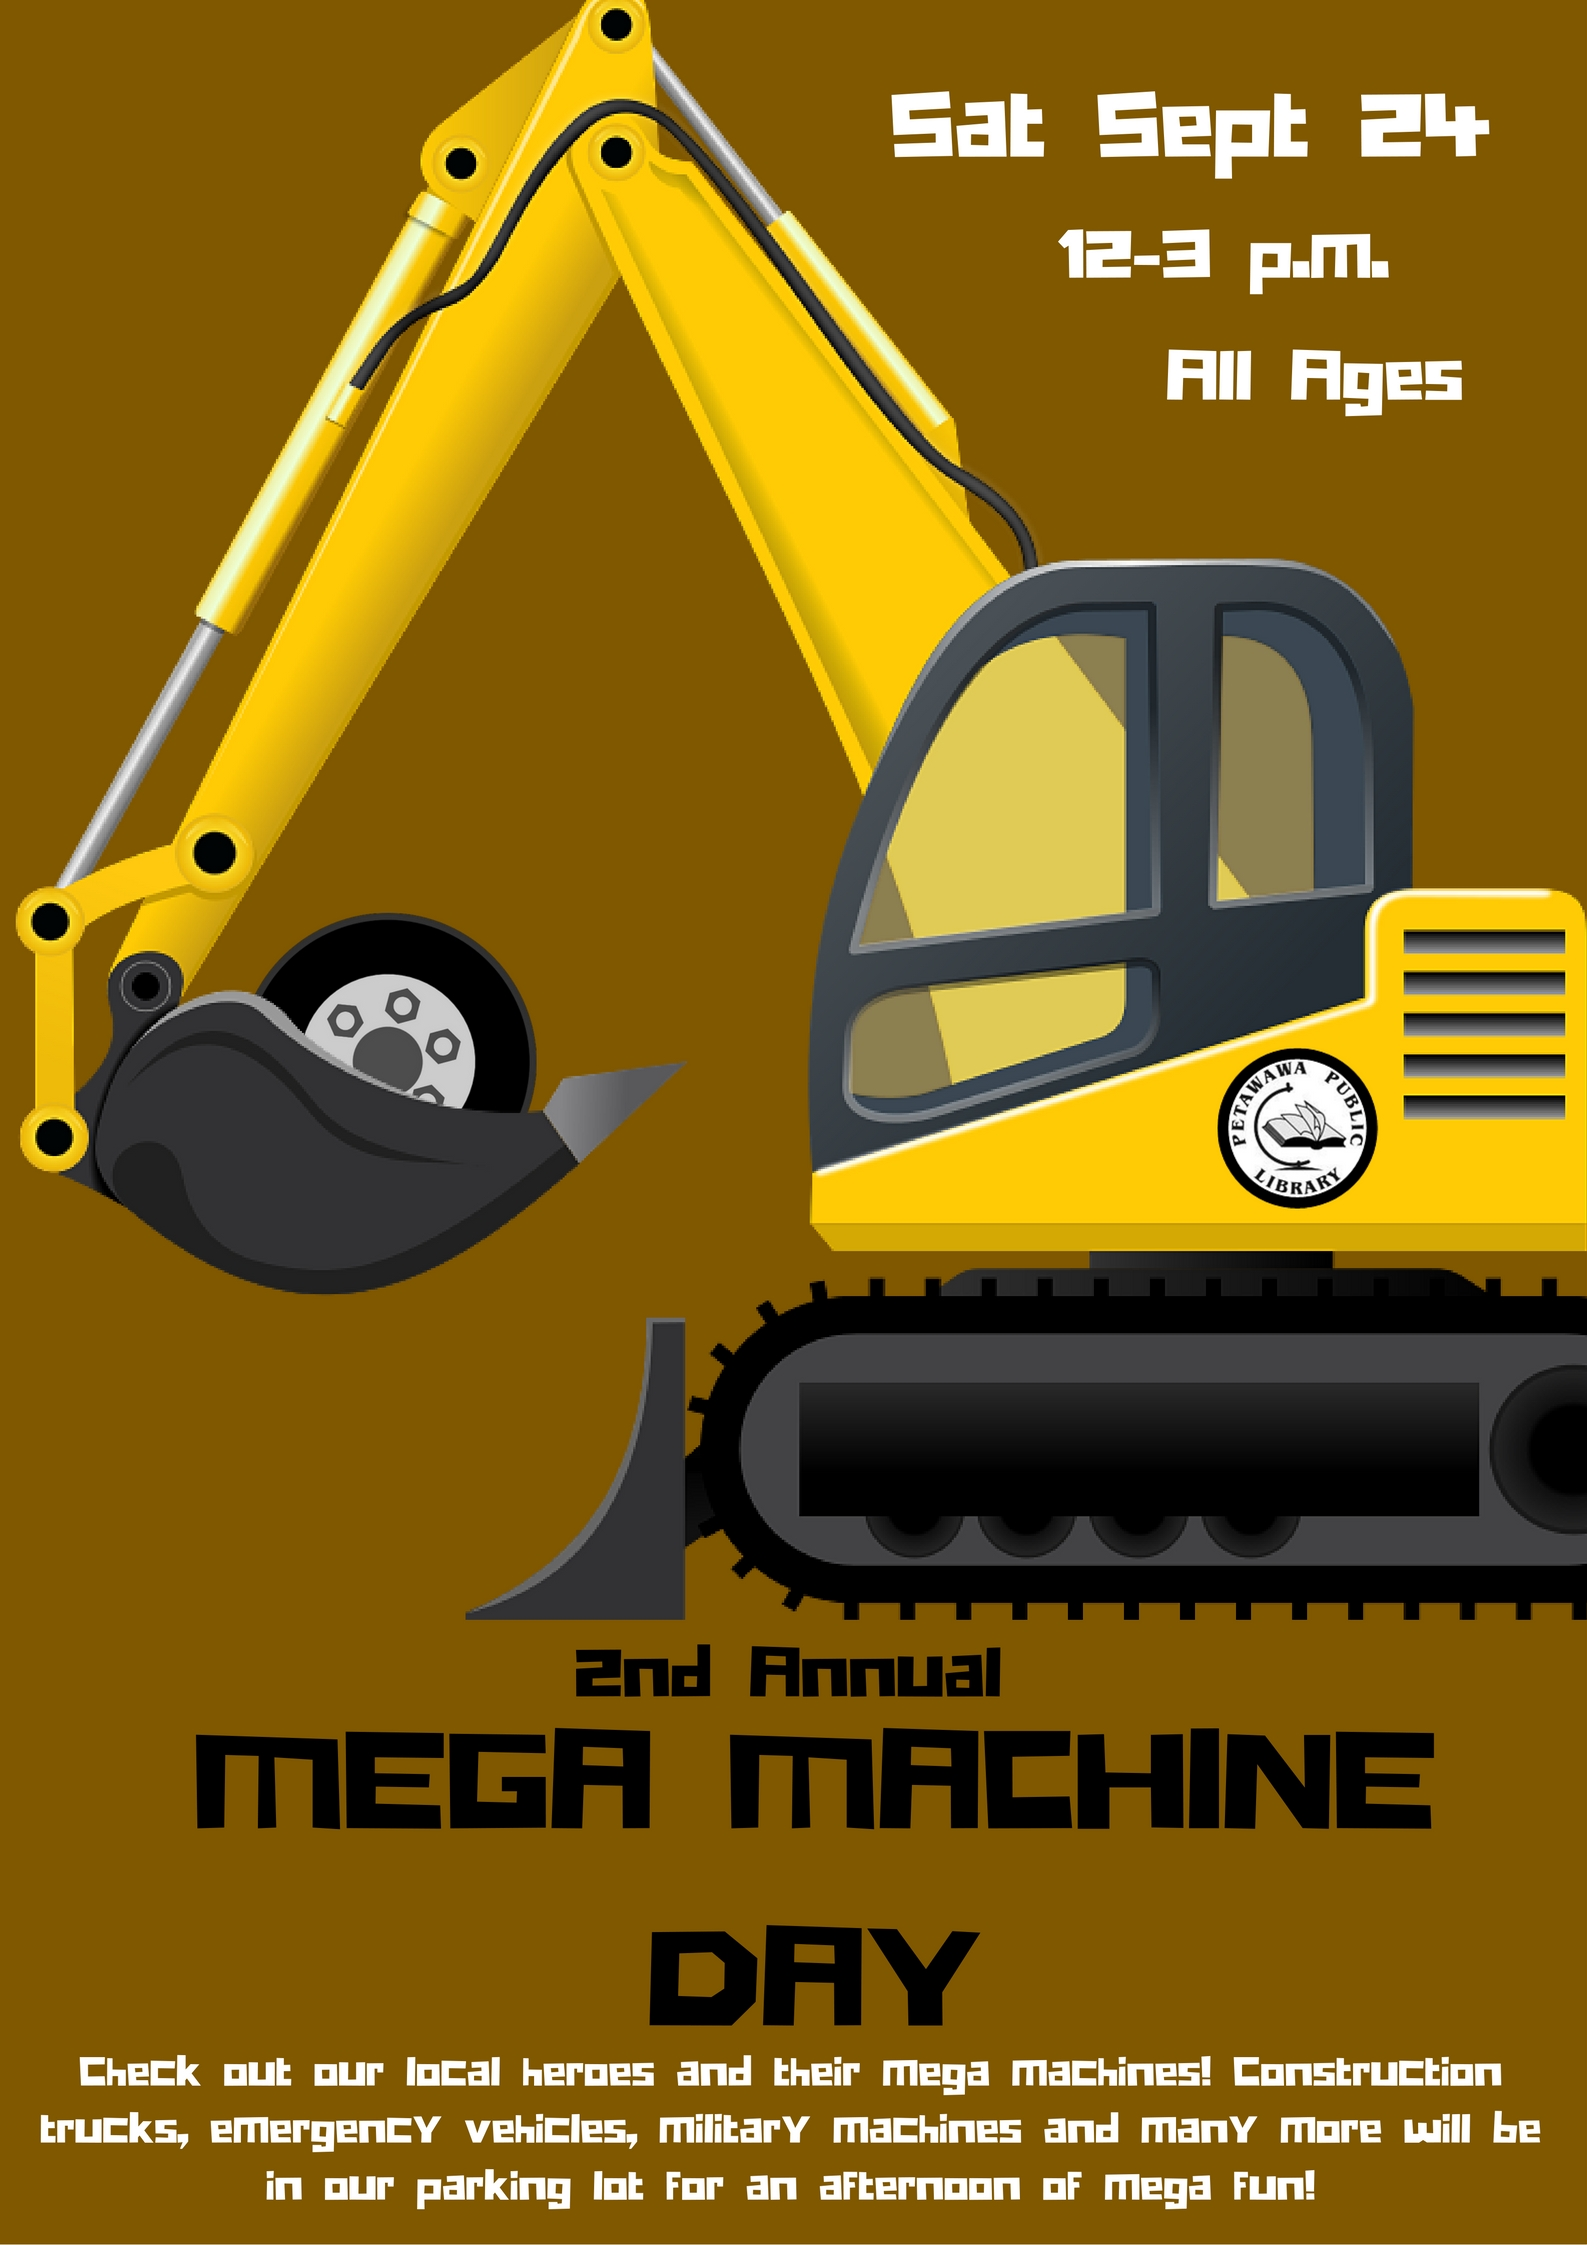 MEGA MACHINE DAY (2)